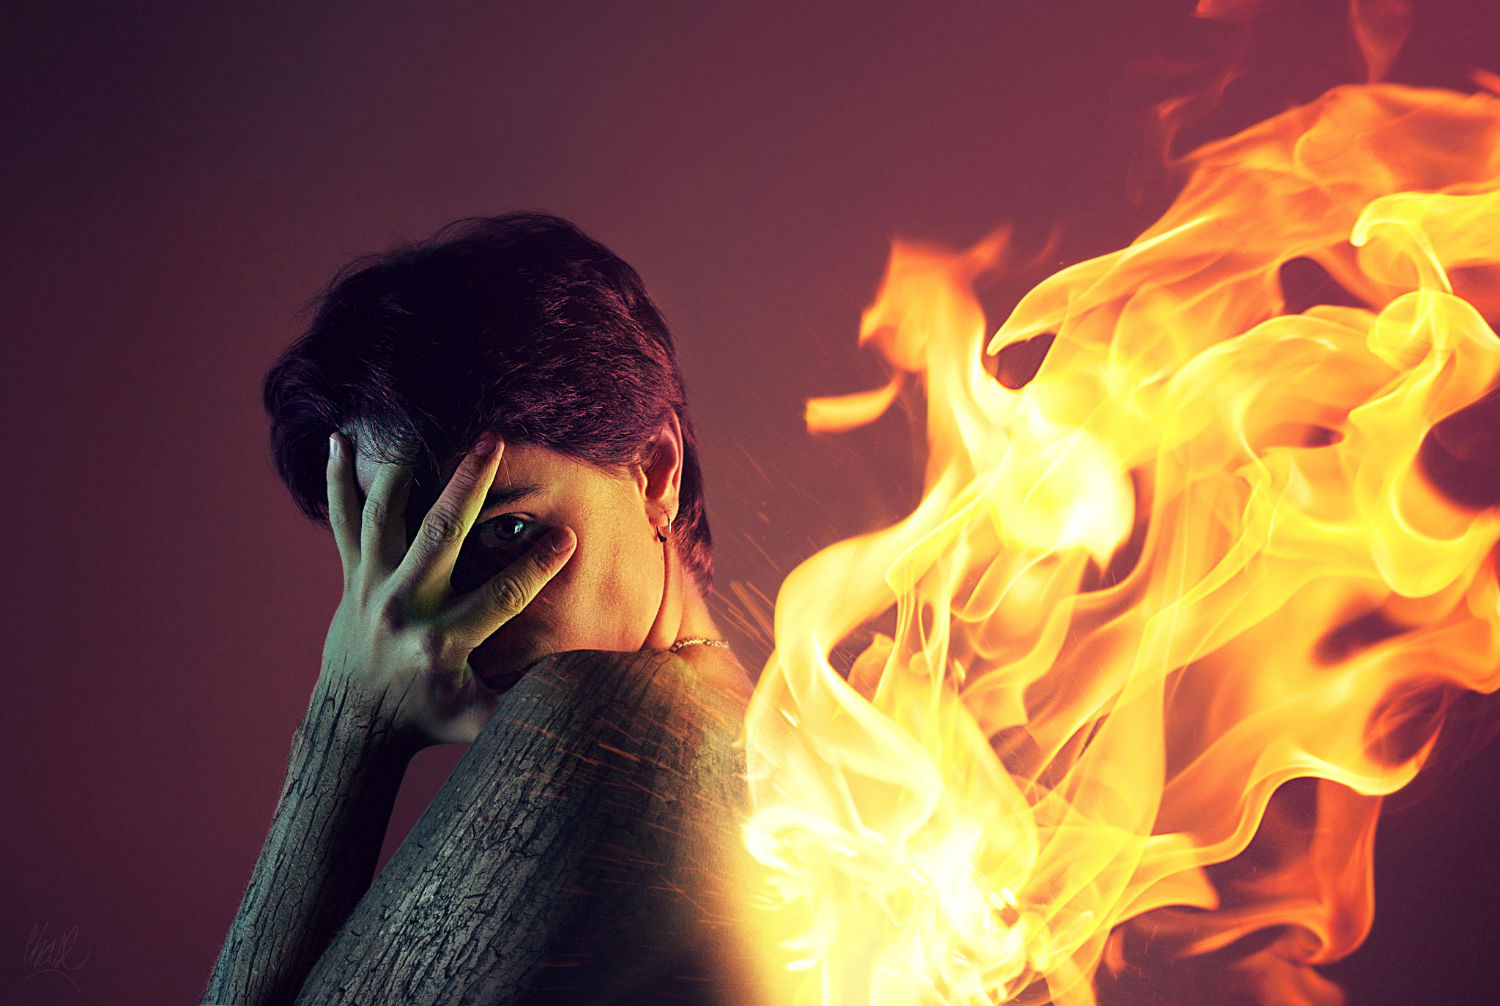 Rubén Chase surreal photography fire portrait